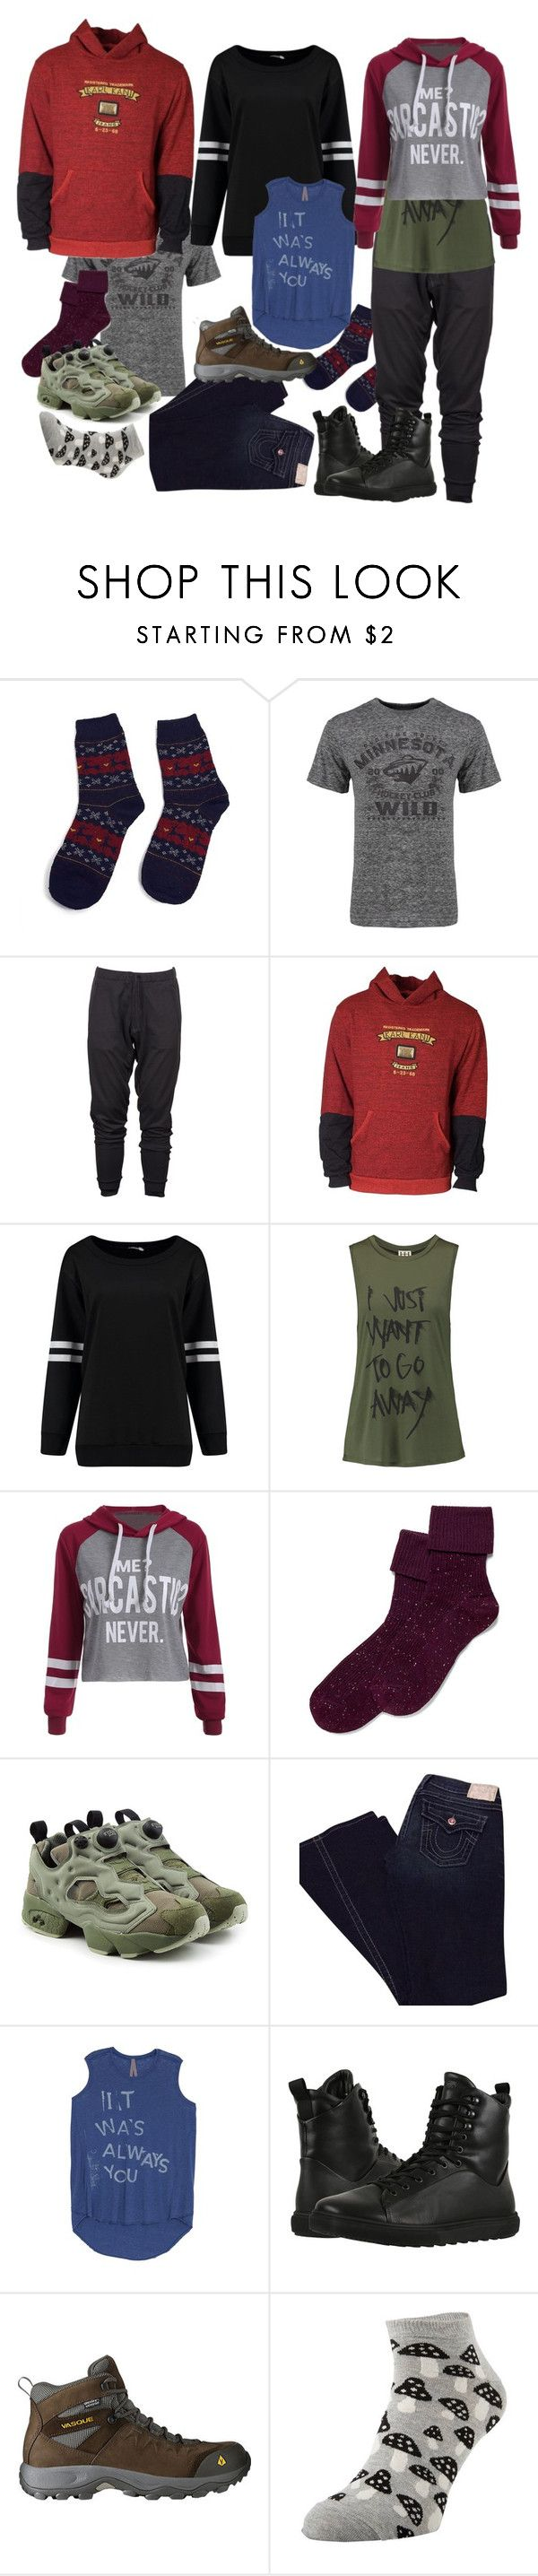 """Hockey wild always you"" by amanda-anda-panda ❤ liked on Polyvore featuring Old Time Hockey, Y-3, Haute Hippie, Hue, Reebok, True Religion, Melissa McCarthy Seven7, HOOD Rubber Company, Vasque and plus size clothing"